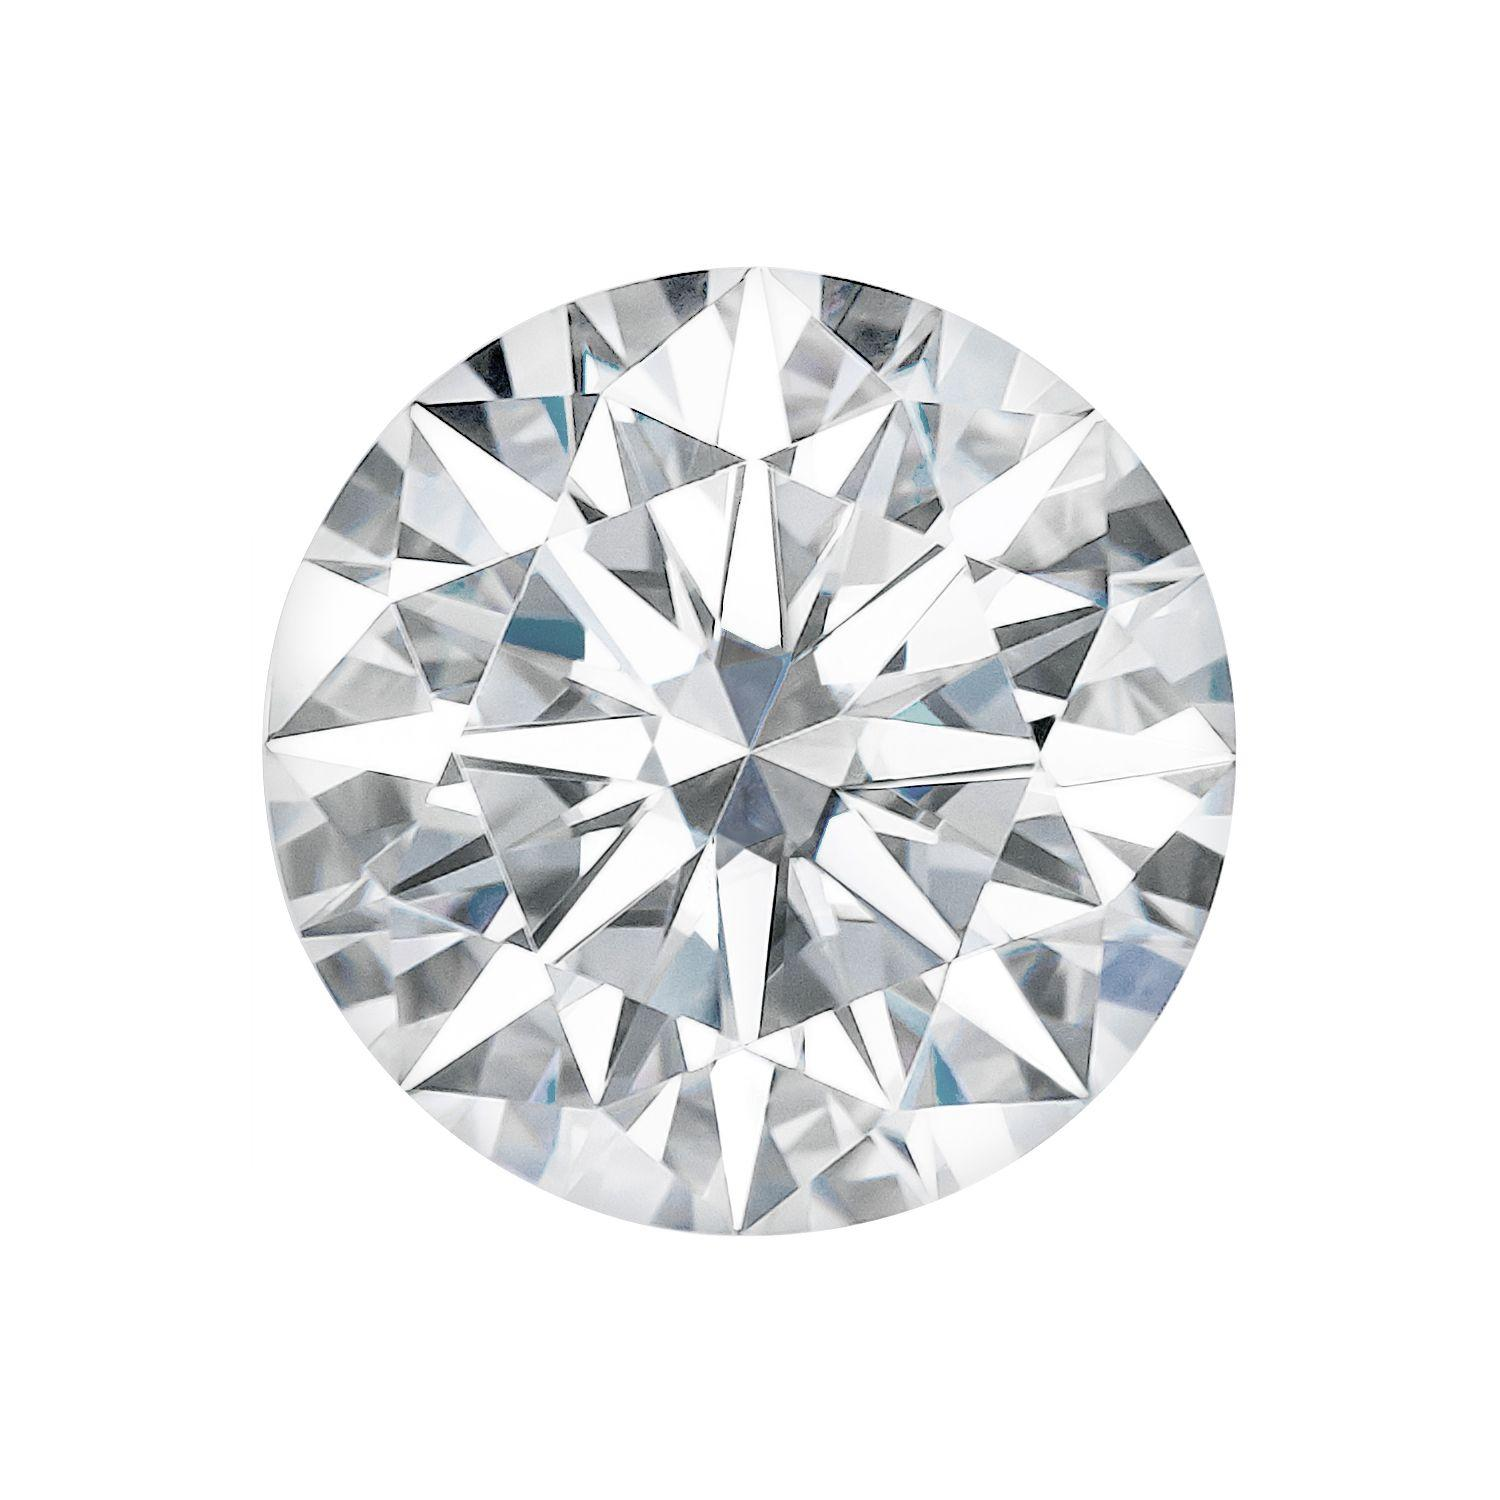 Champagne Color Real Loose Moissanite Round Diamond Cut Best For Ring VVS 5.0 MM